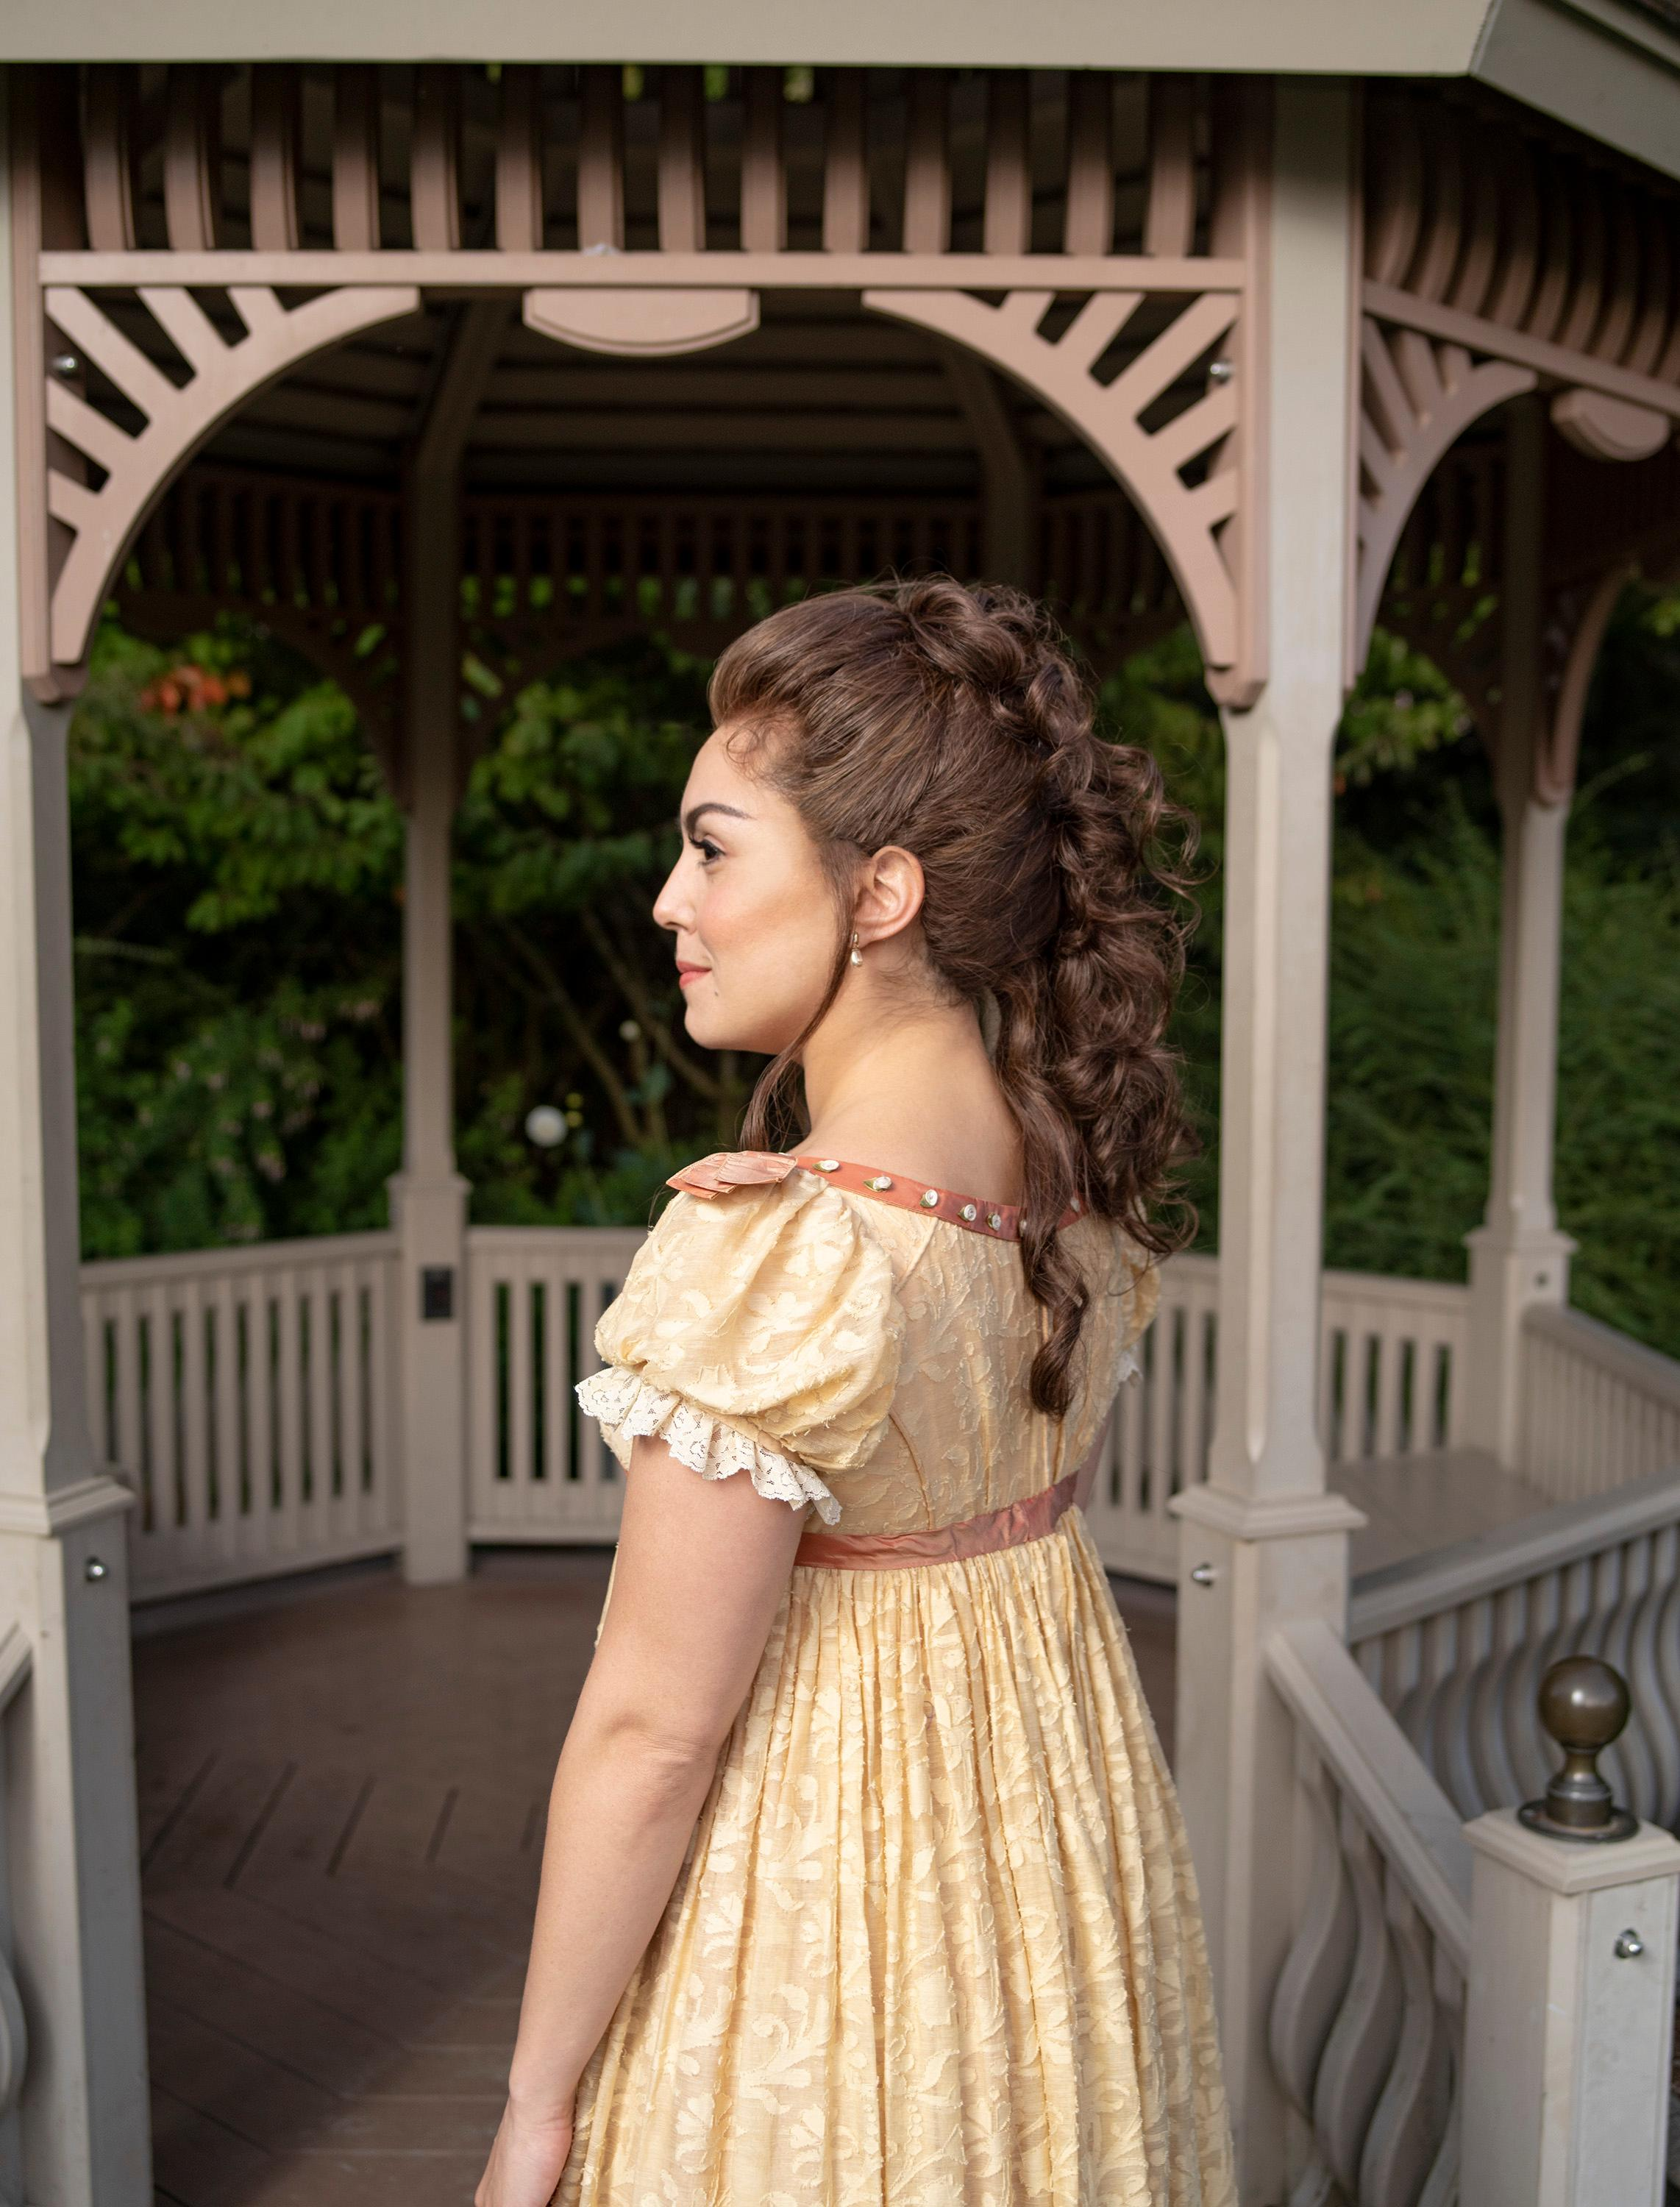 Olivia Hernandez stars as Elizabeth Bennet in 'Austen's Pride' at The 5th Avenue Theatre (Photo Credit: Mark Kitaoka)